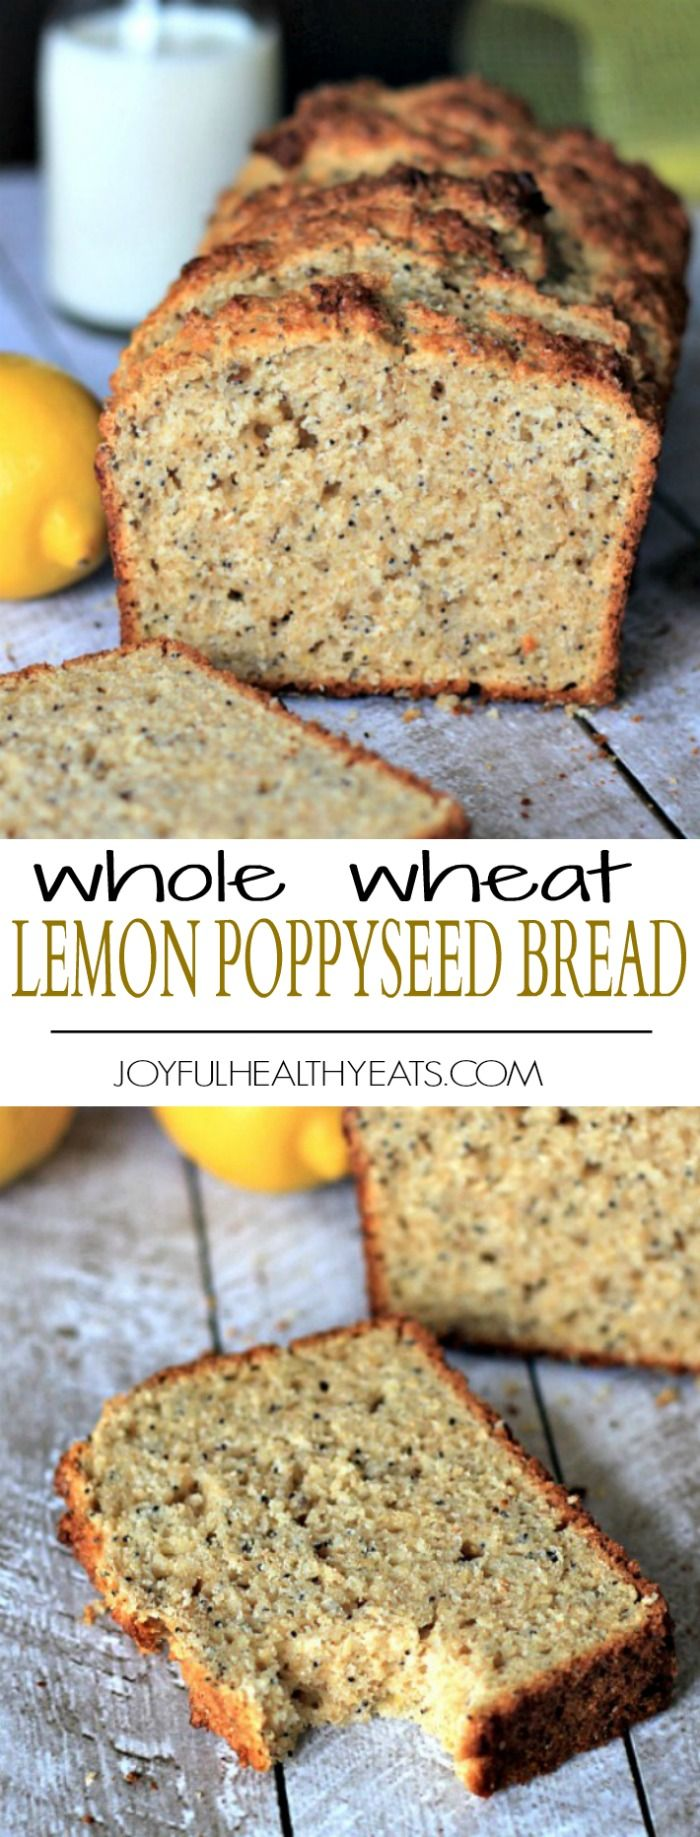 Lemony moist and naturally sweet Whole Wheat Lemon Poppyseed Bread with an extra nutrient boost from chia seeds and greek yogurt. | joyfulhealthyeats.com #recipes